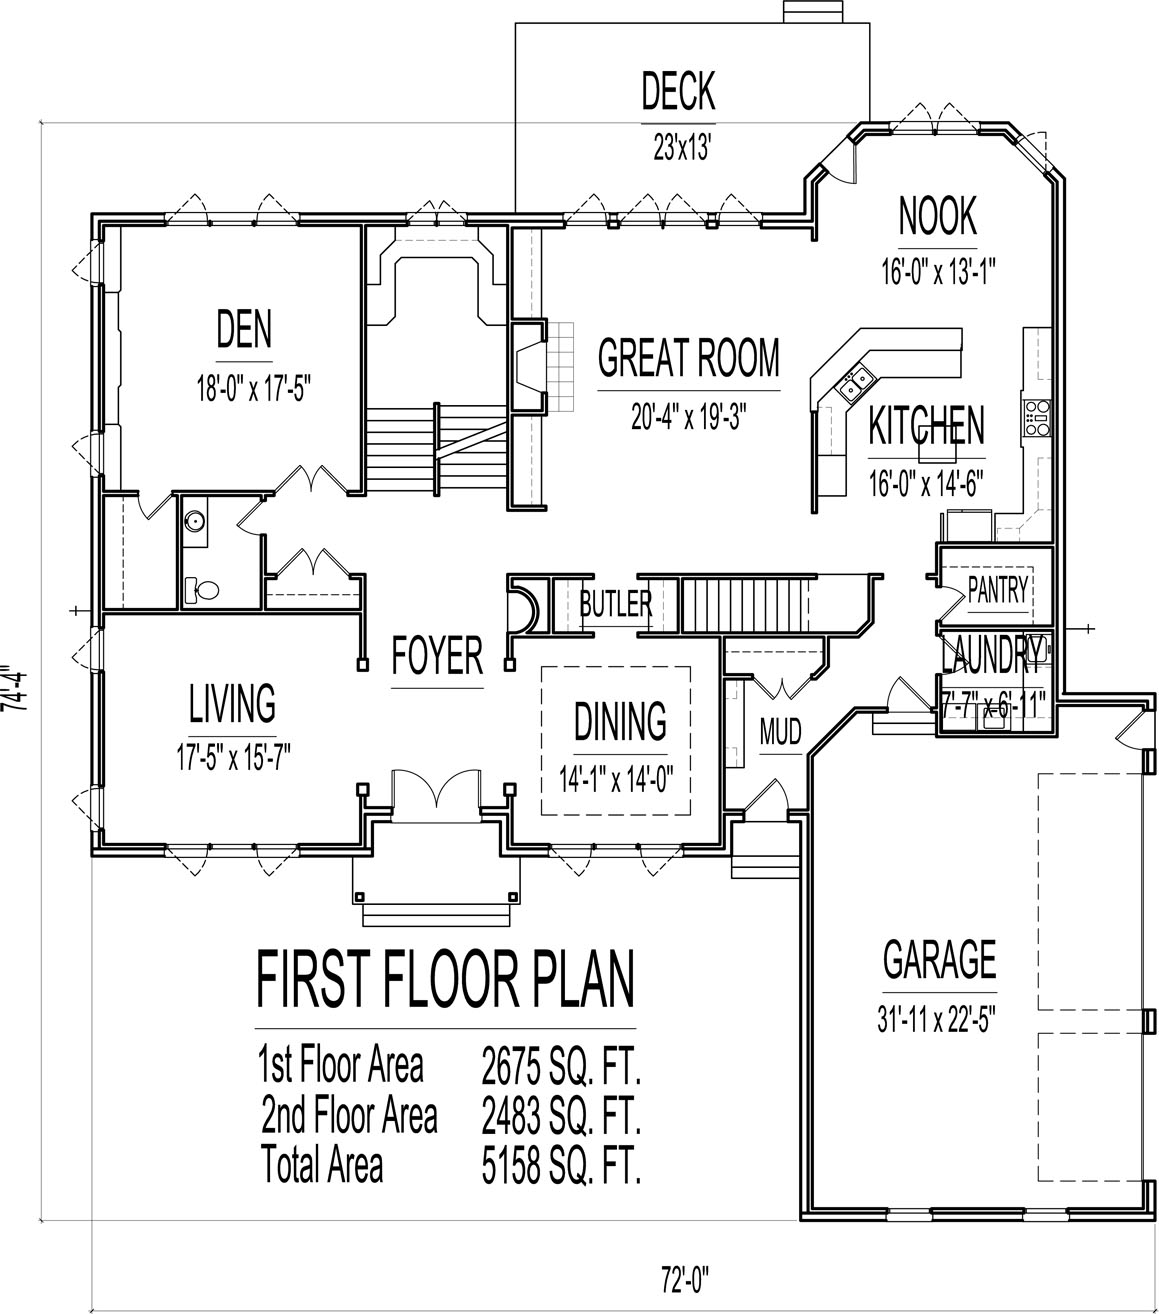 5000 Sq Ft House Floor Plans 5 Bedroom 2 Story Designs Blueprints